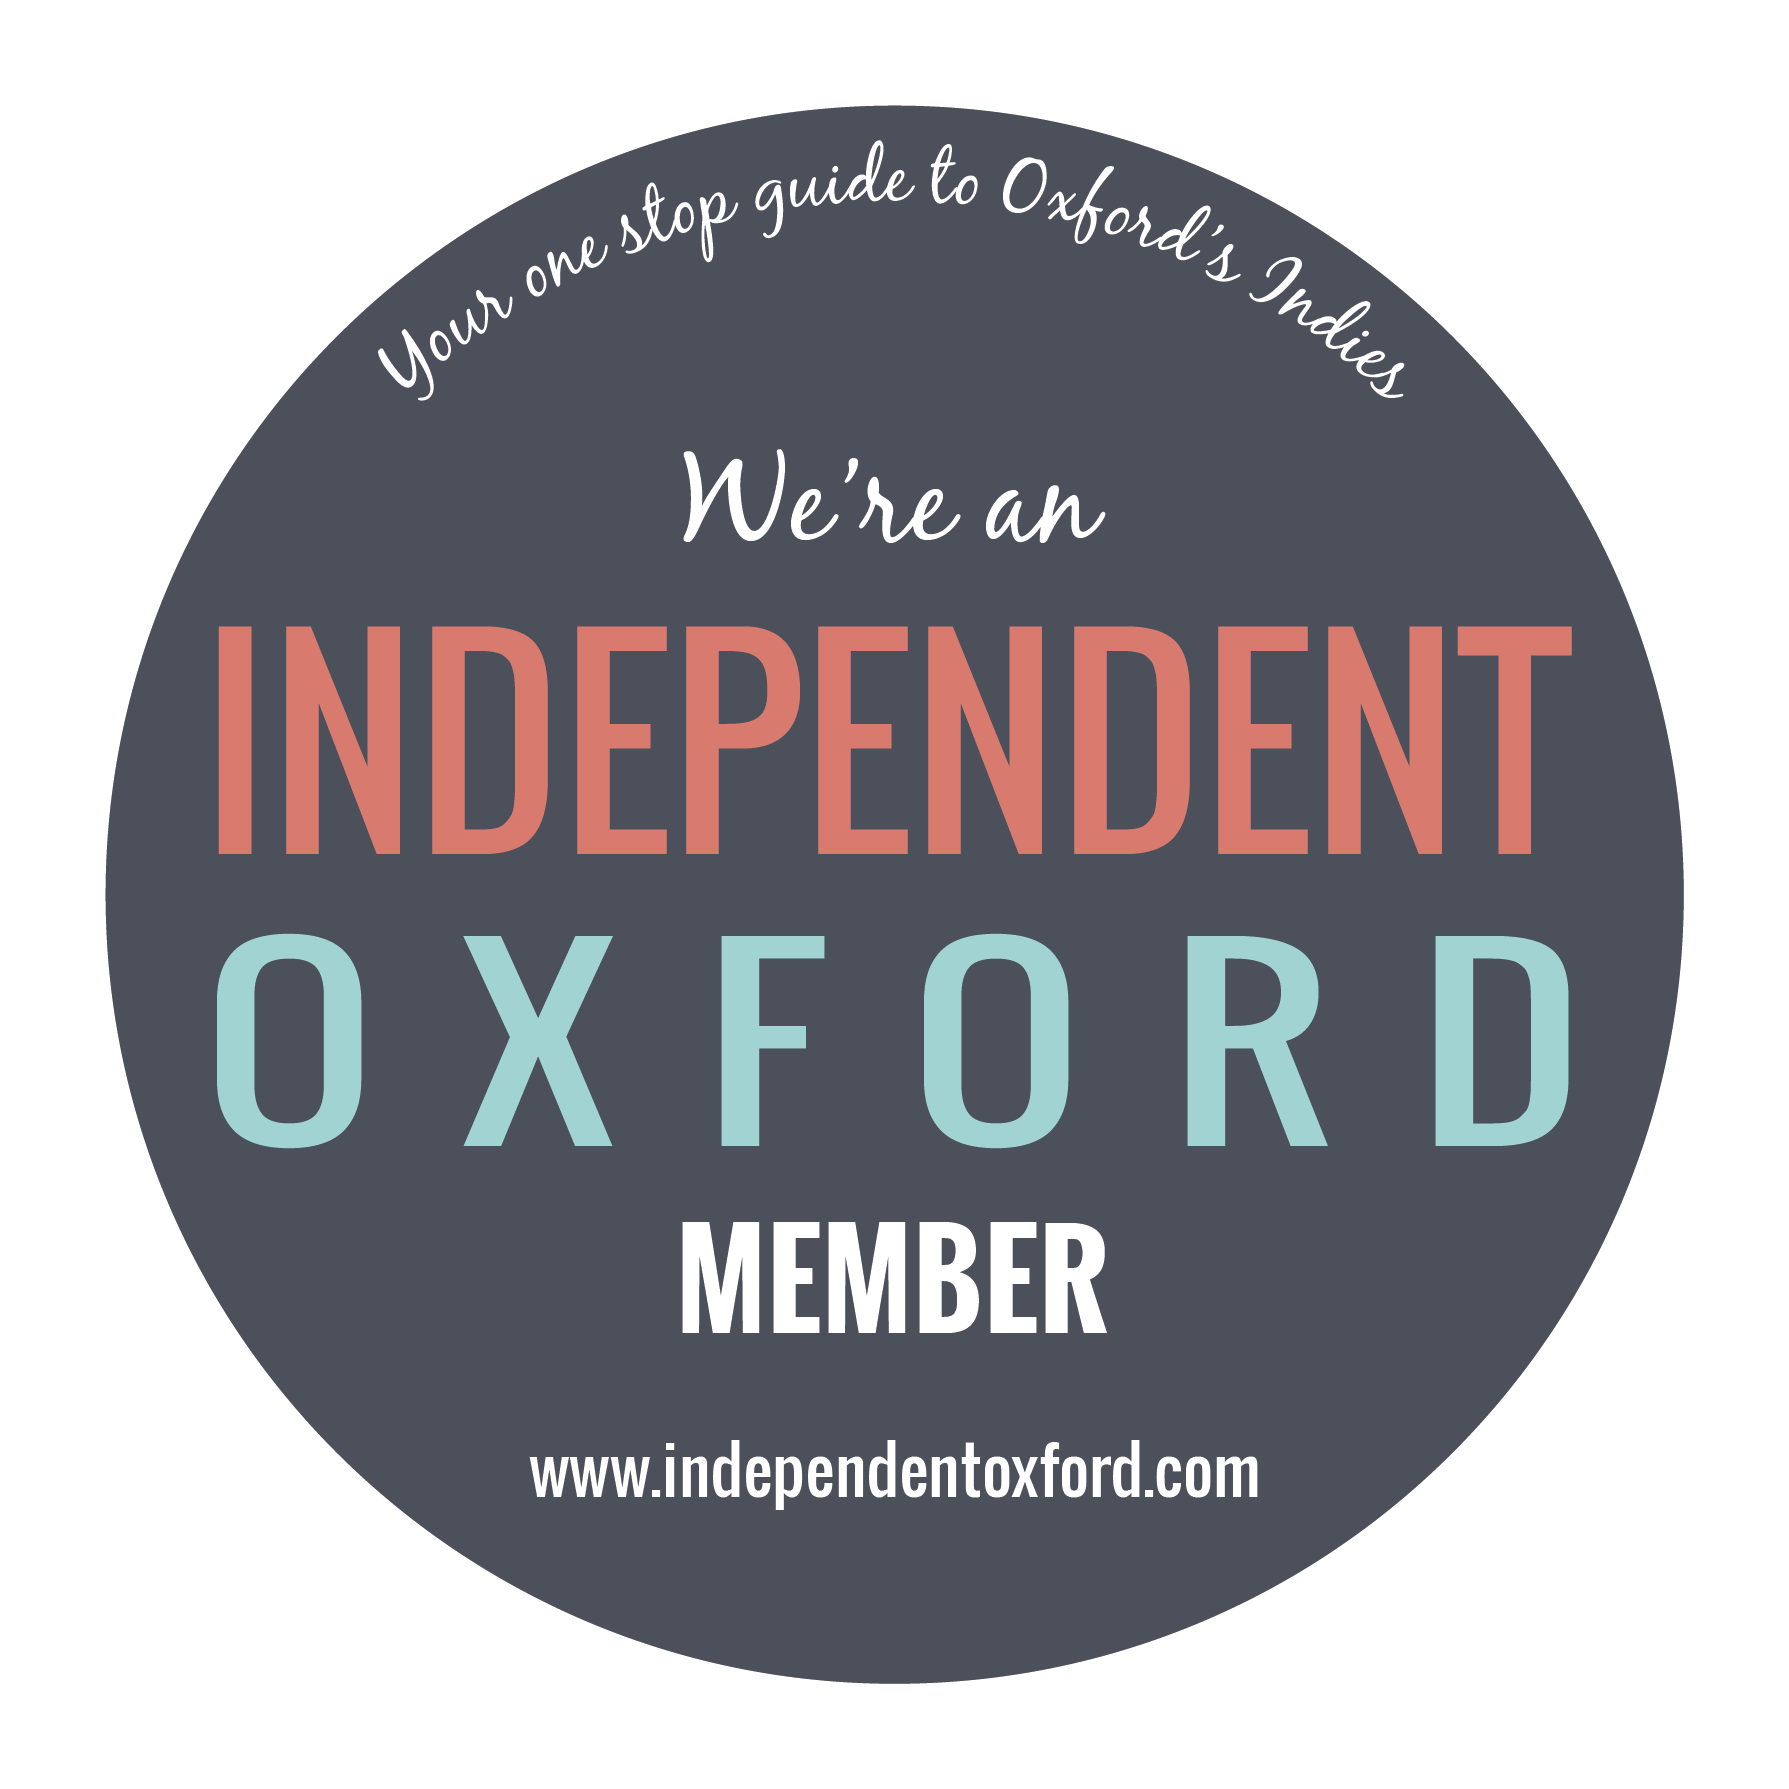 Member_of_Independent_Oxfordshire